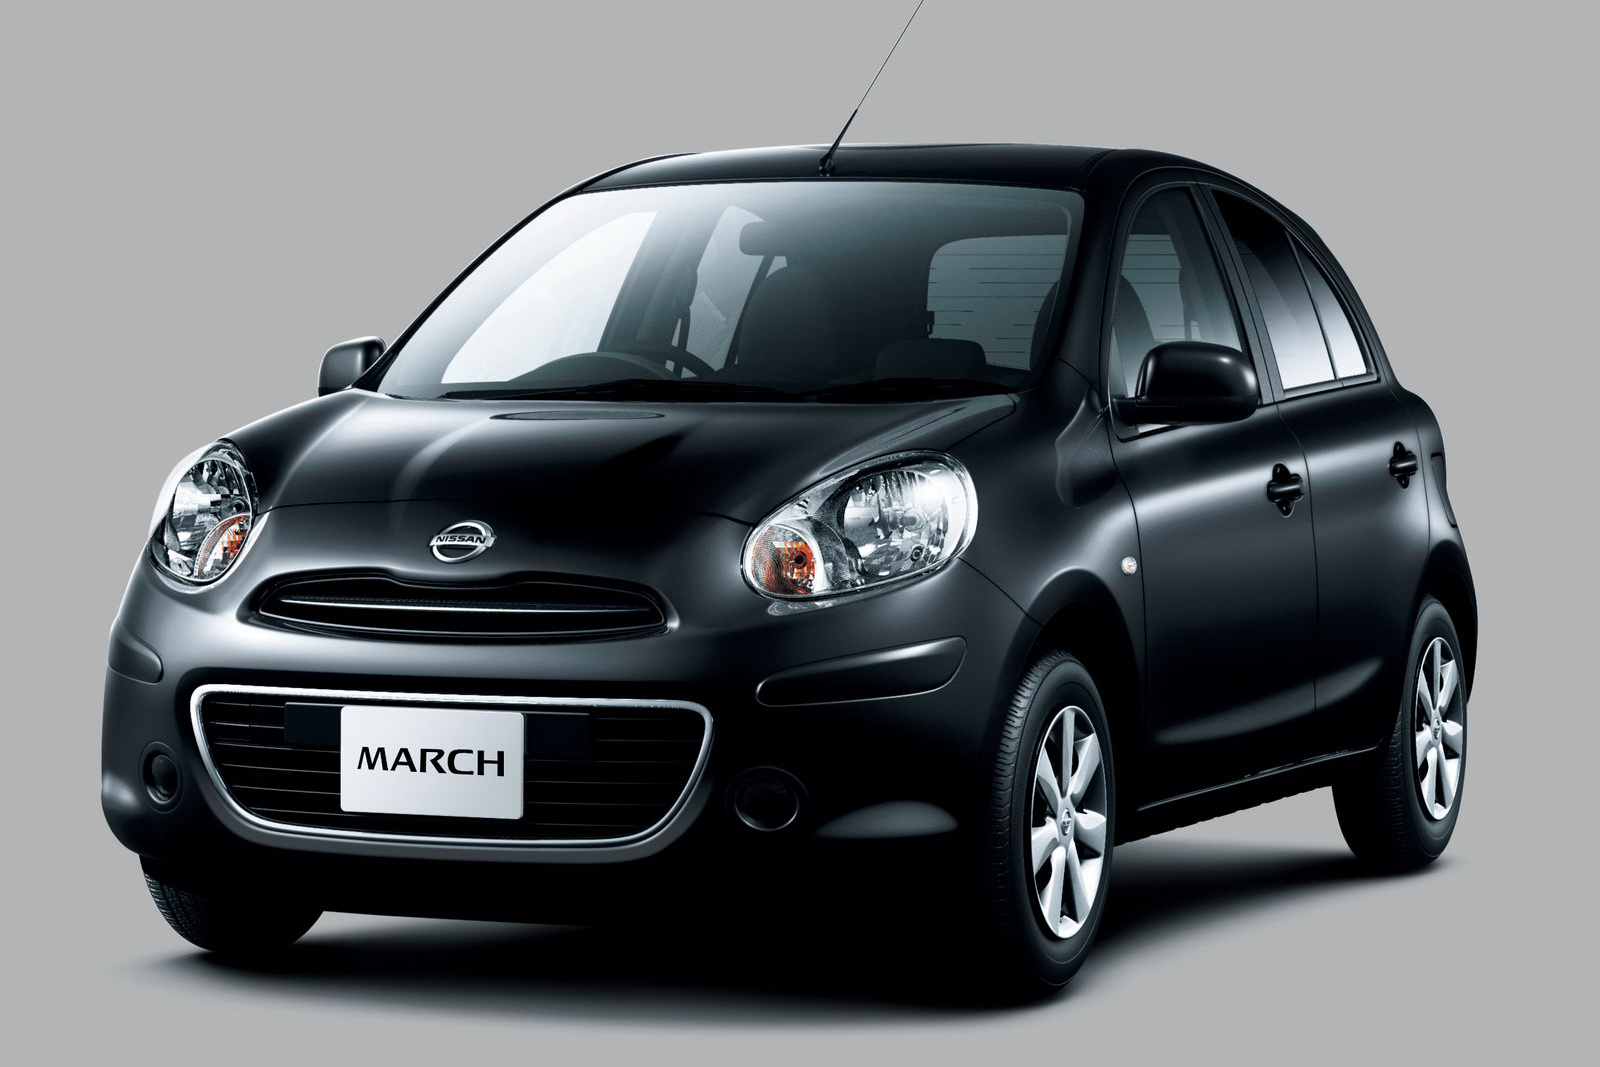 Carscoop: Thai-Made 2011 Nissan March Goes On Sale In